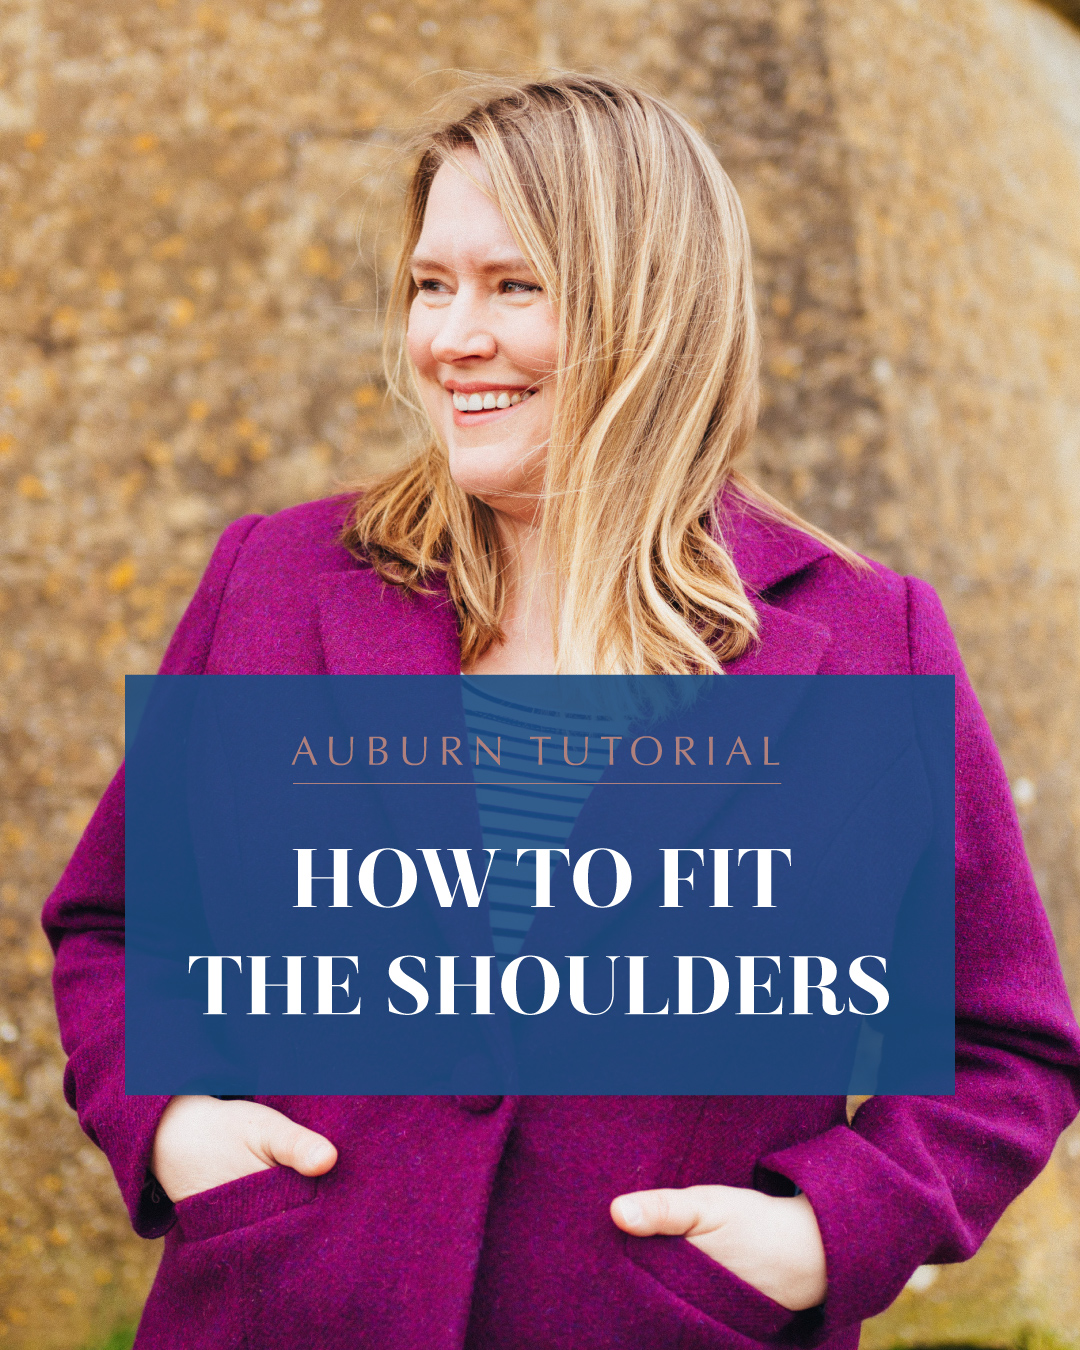 Auburn tutorial: how to fit the shoulders